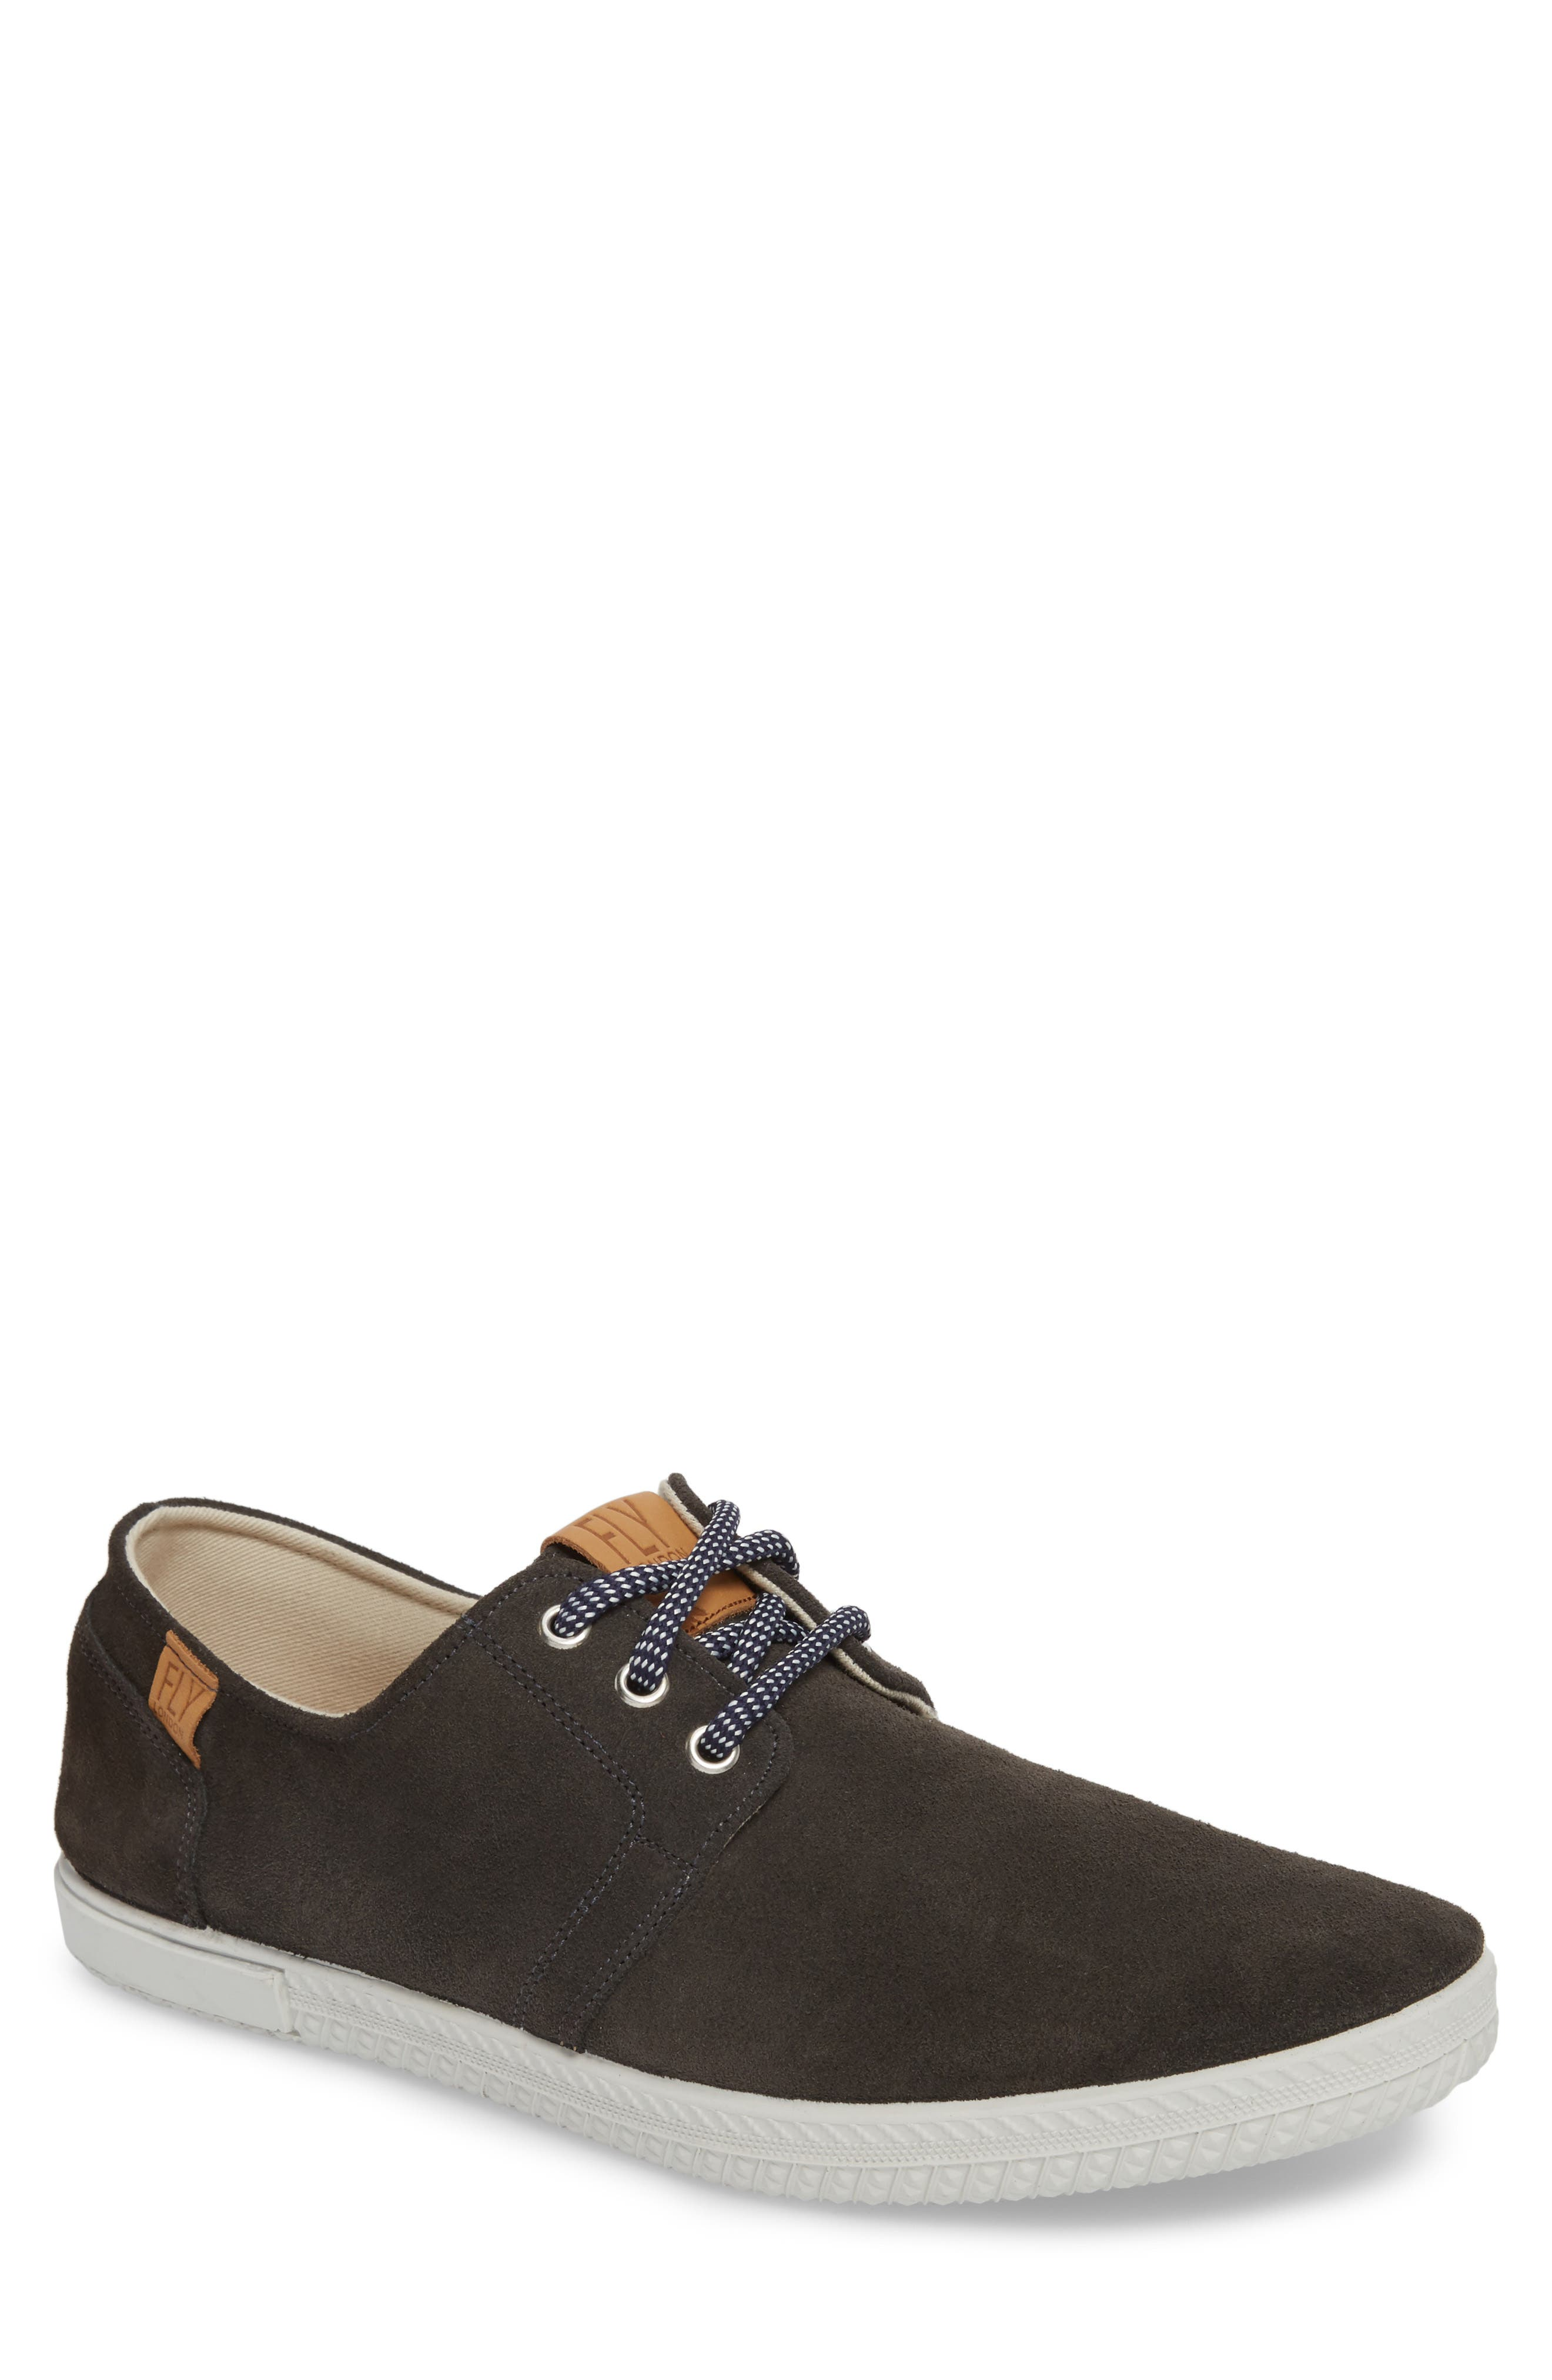 Sesh Low Top Sneaker,                         Main,                         color, Anthracite Leather